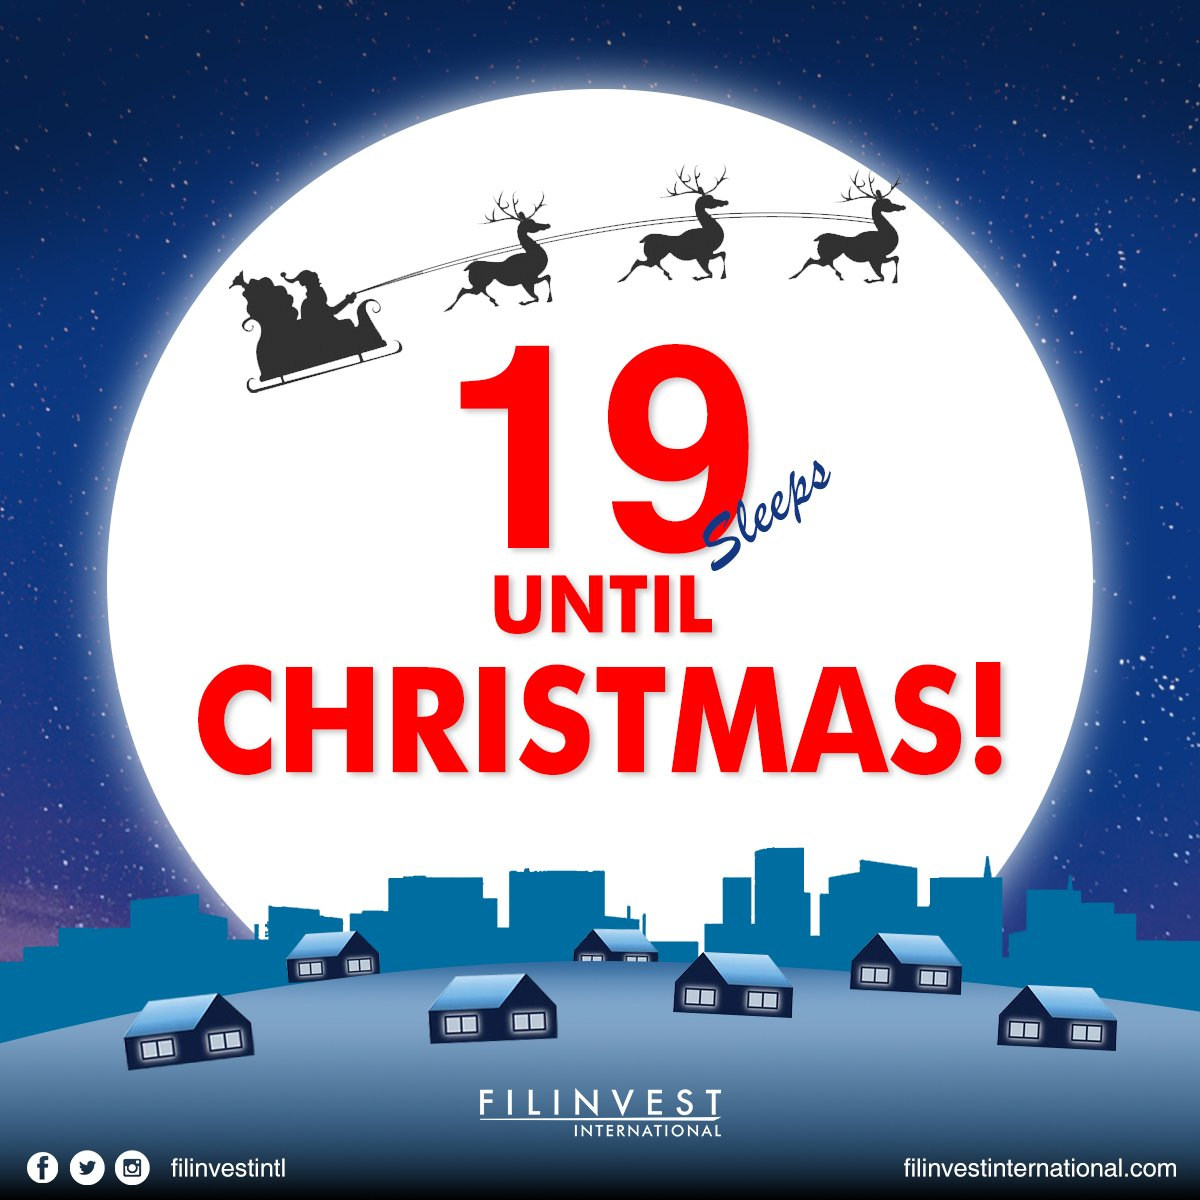 FILINVEST INTERNATIONAL , Christmas is here! What better way to spend this season but to fill your homes with love.  It is 18 Days before Christmas Days! https://t.co/3KYTbadVny